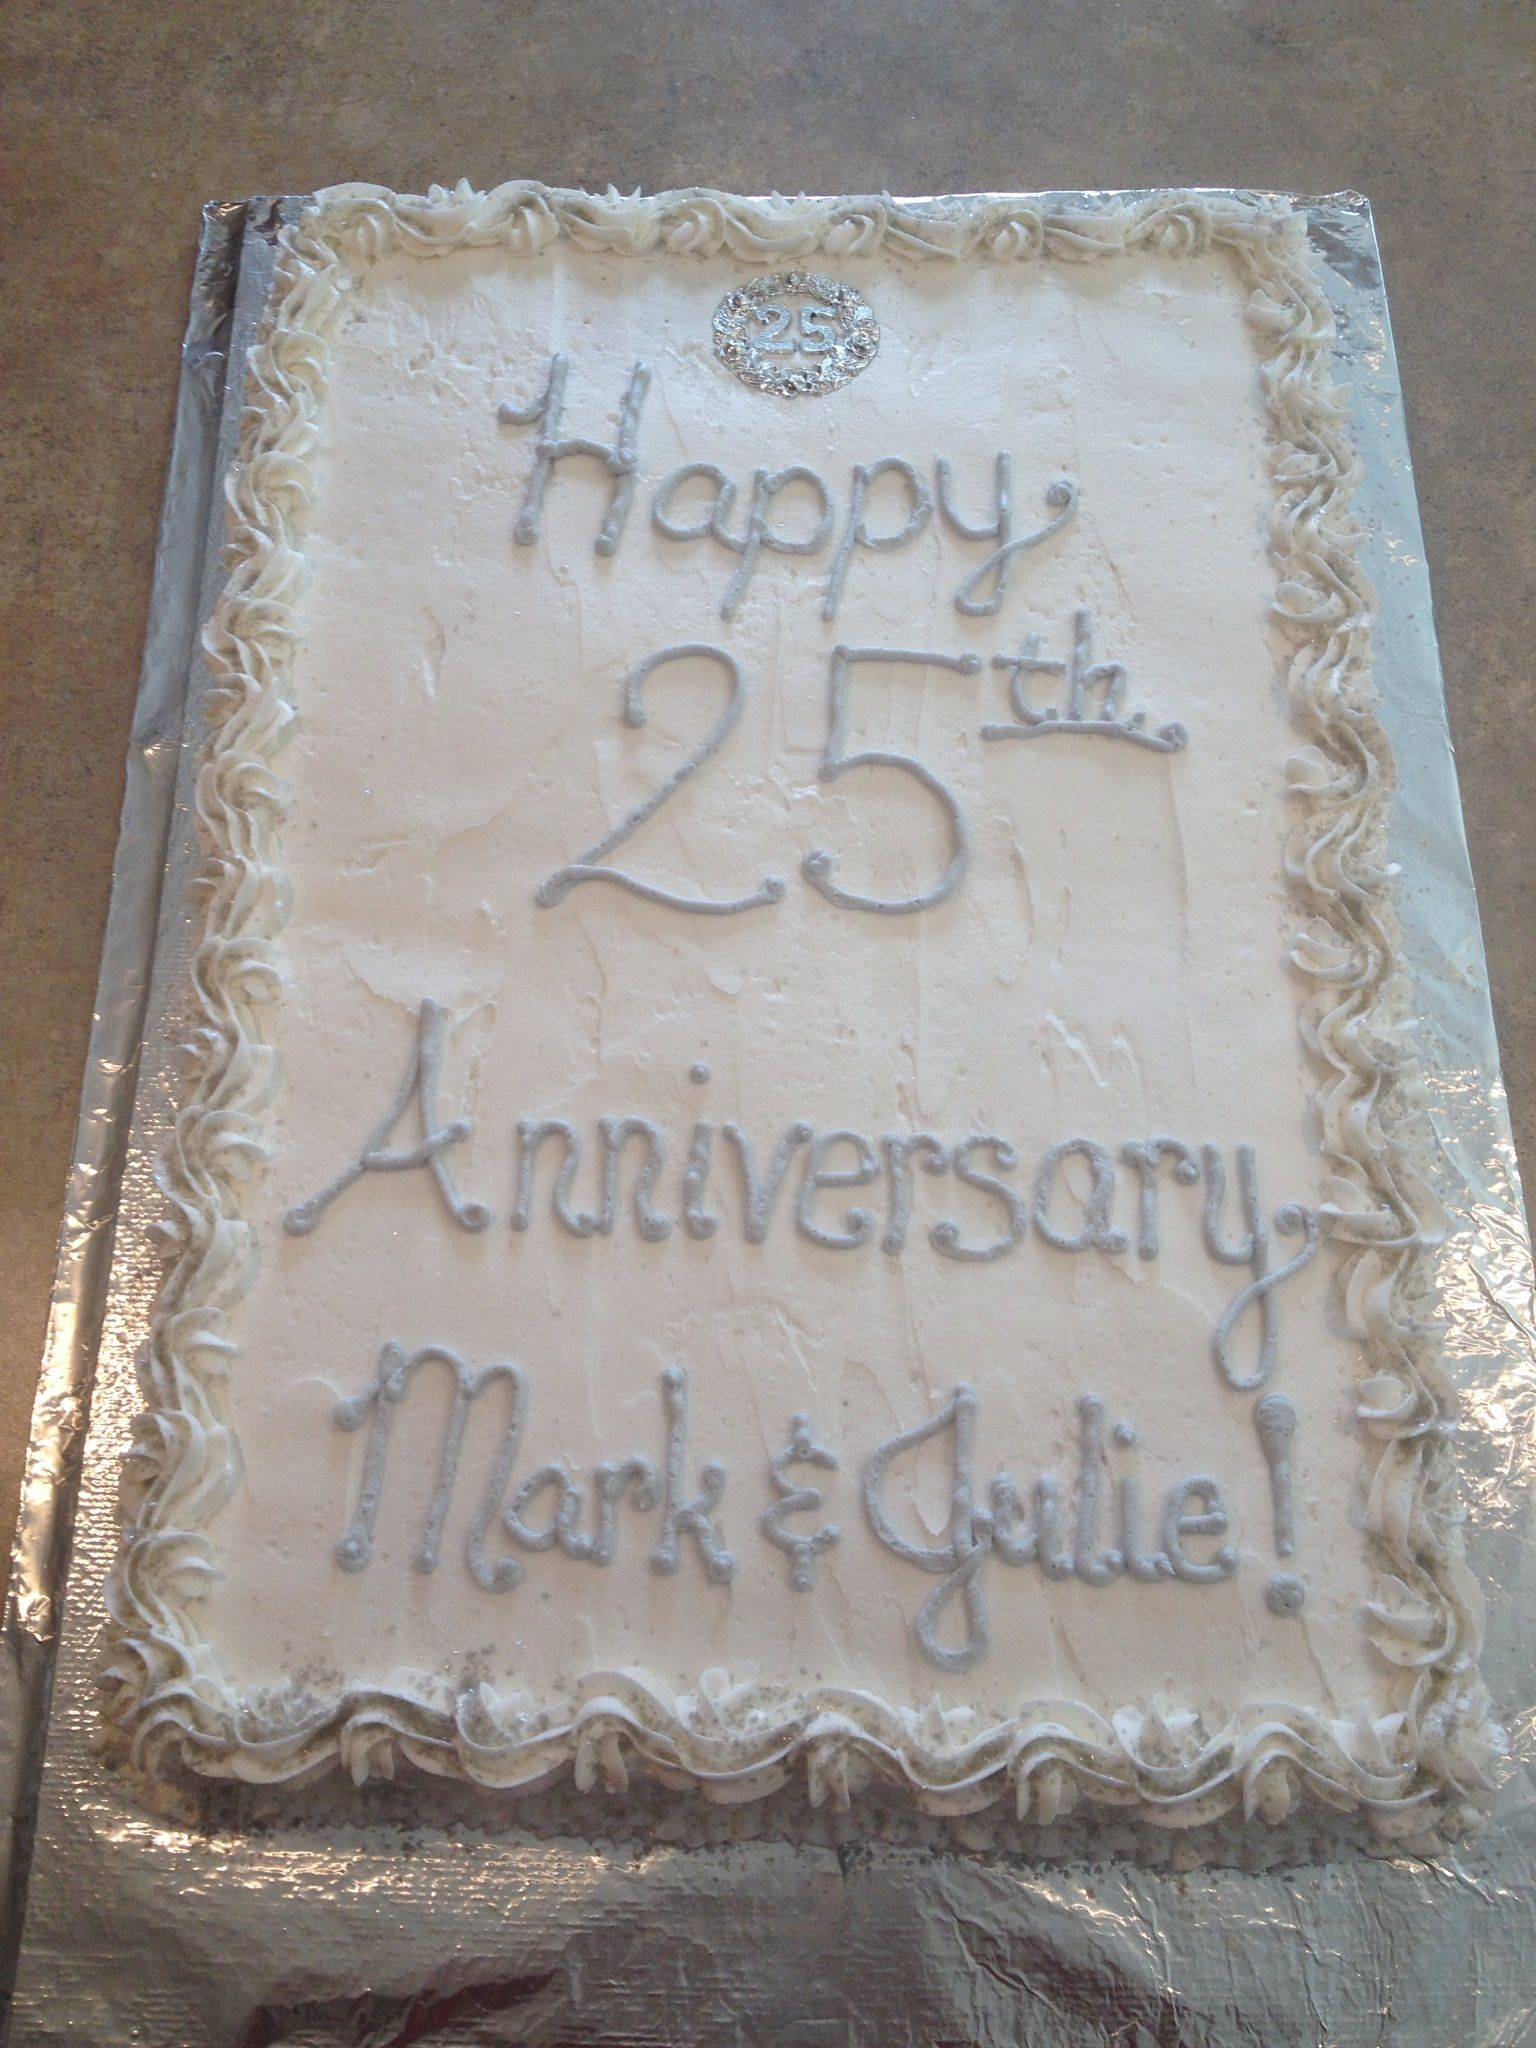 25th Wedding Anniversary Cake I Made For My Aunt And Uncle 25th Wedding Anniversary Cakes Wedding Anniversary Cake Anniversary Cake